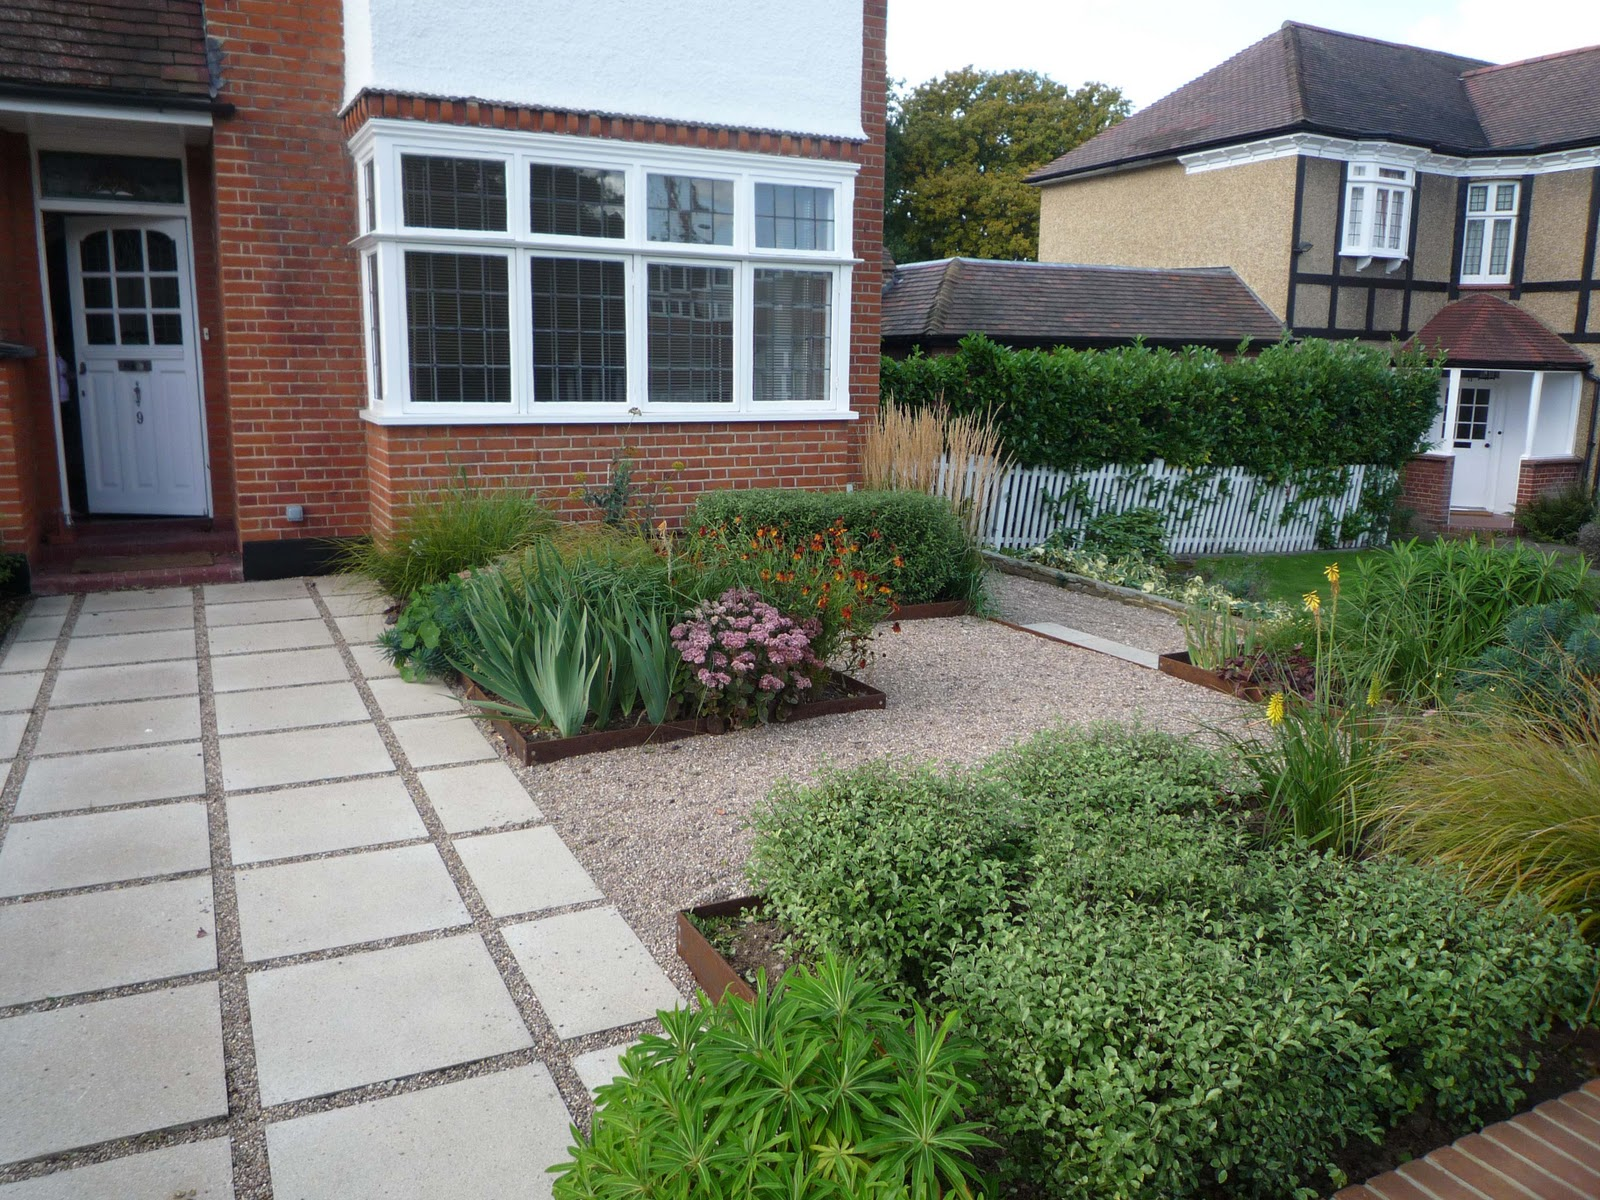 Fenton Roberts Garden Design: See our new Houzz pages